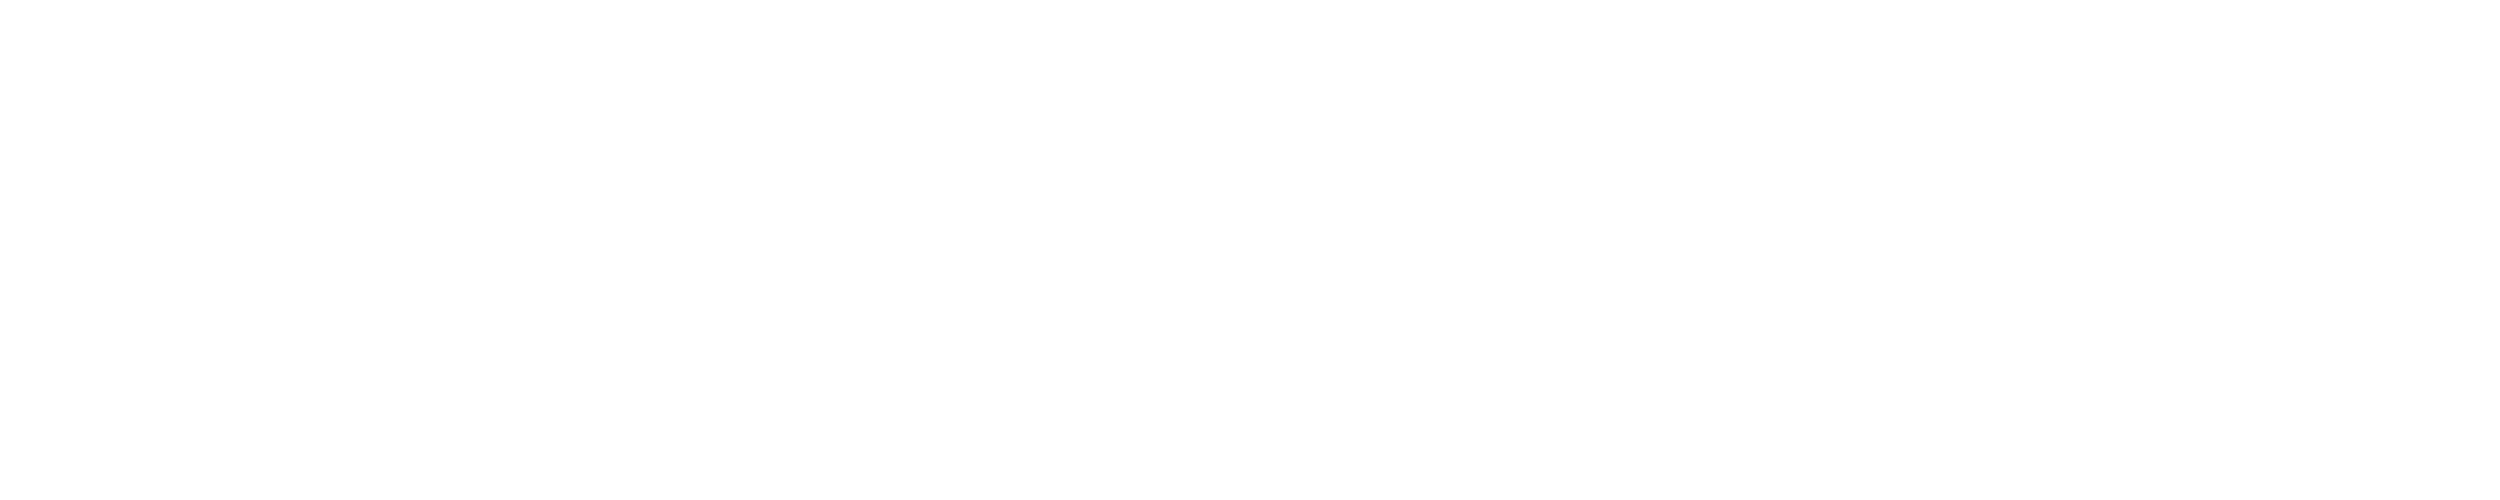 Wellness in skincare and for your business